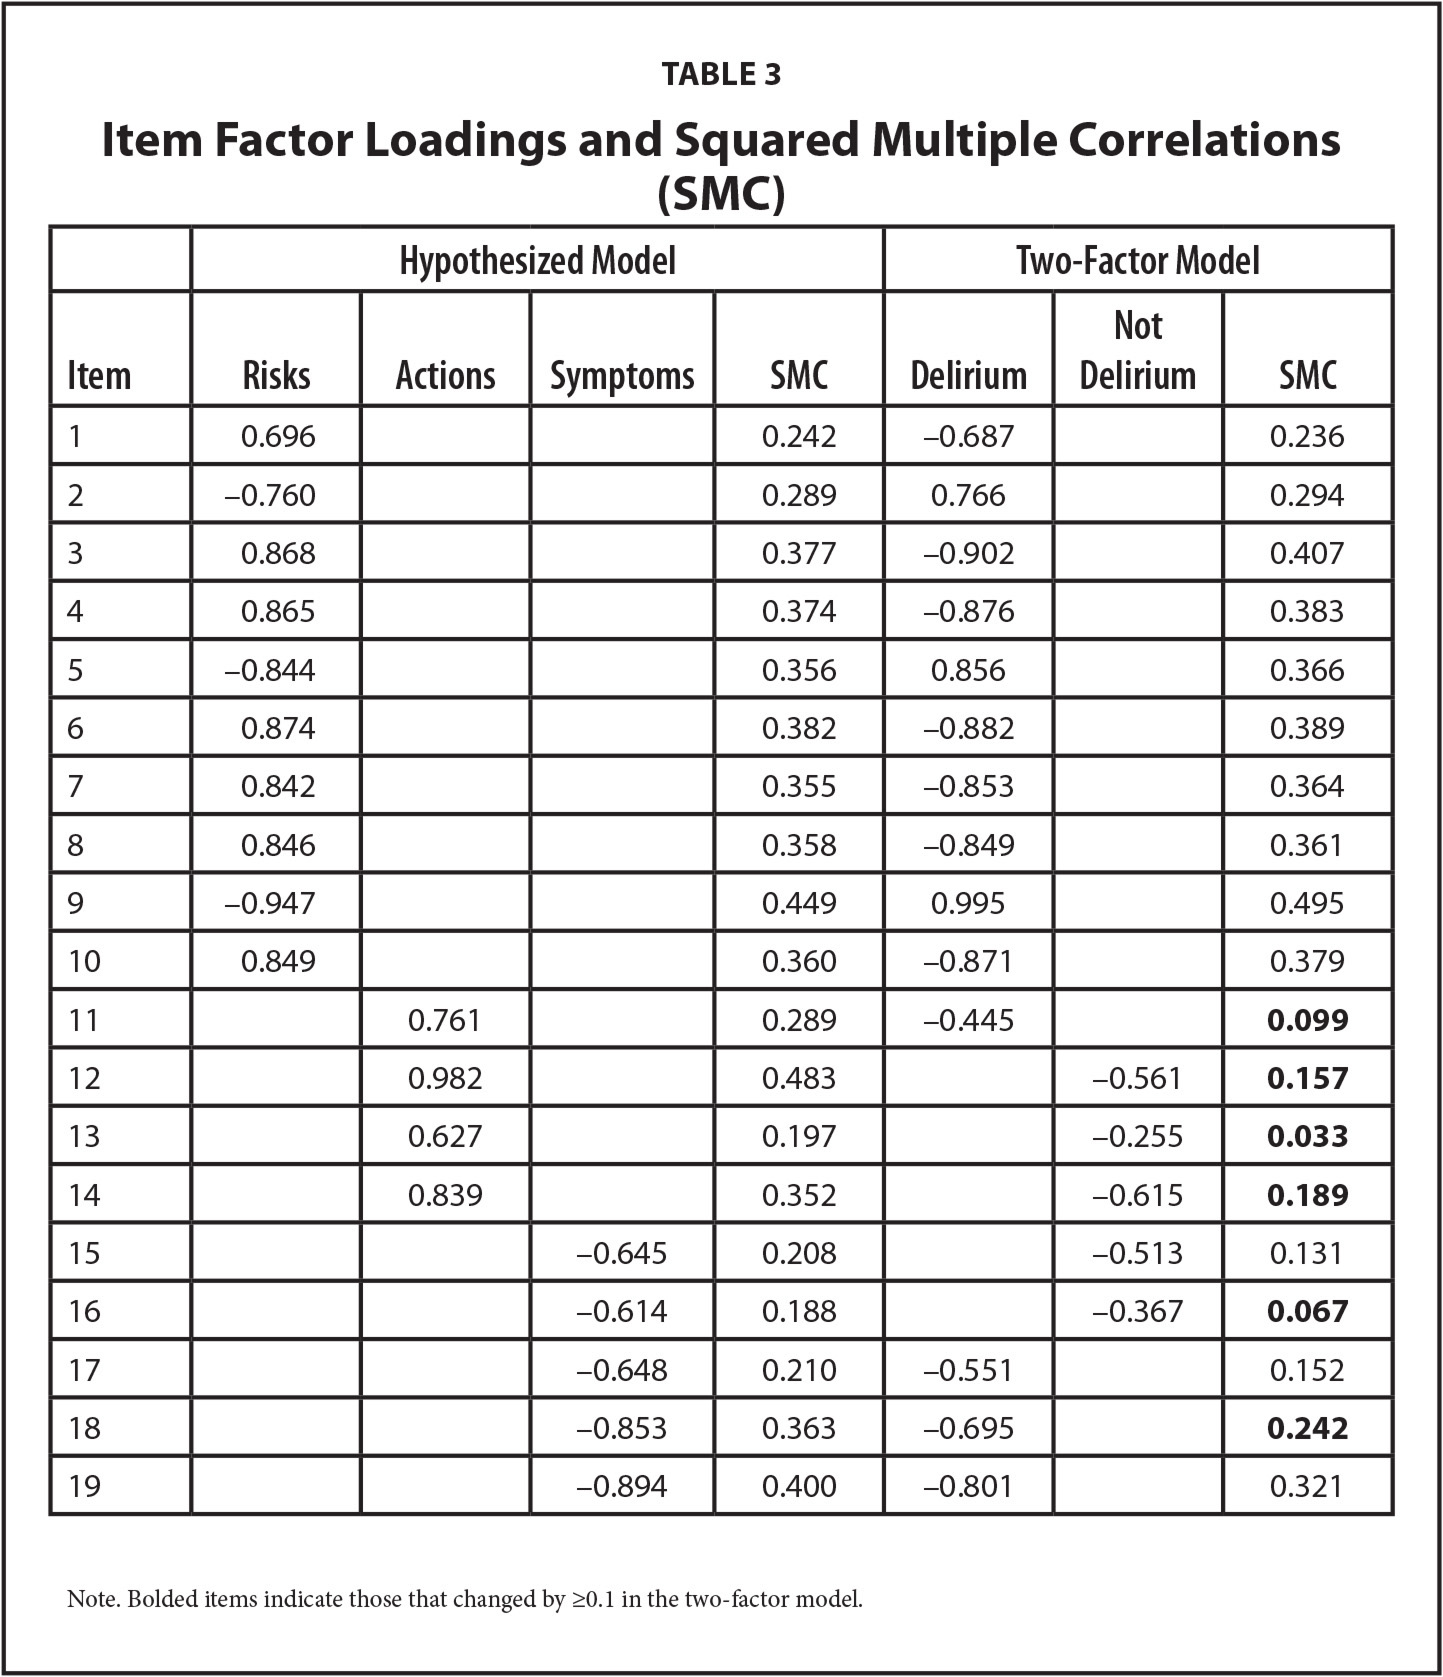 Item Factor Loadings and Squared Multiple Correlations (SMC)